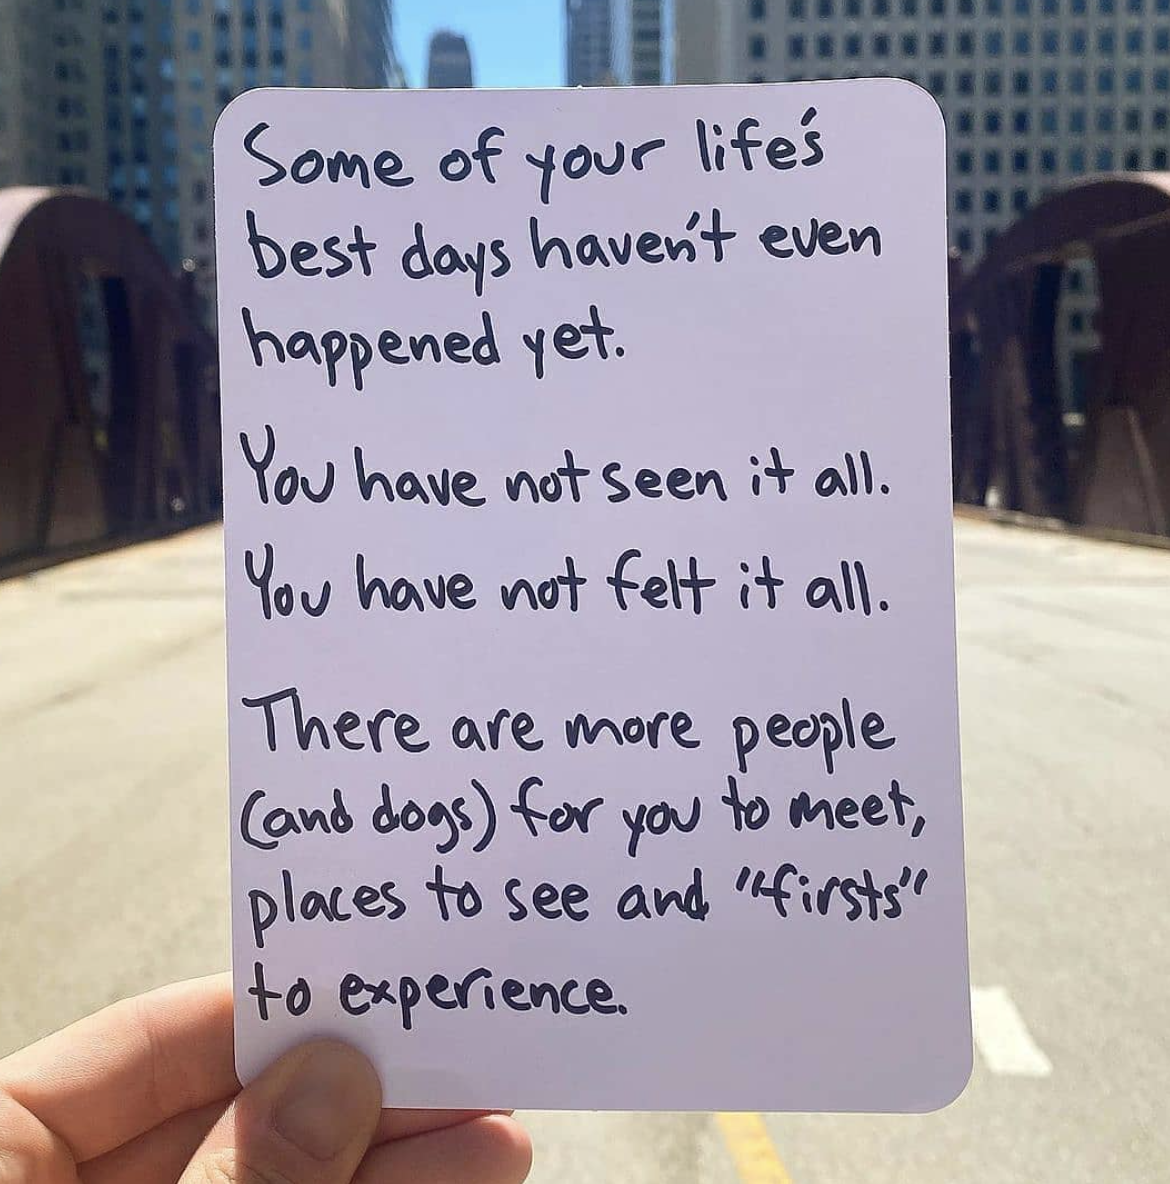 [Image] There is more to life than you can imagine. Never give up hope.